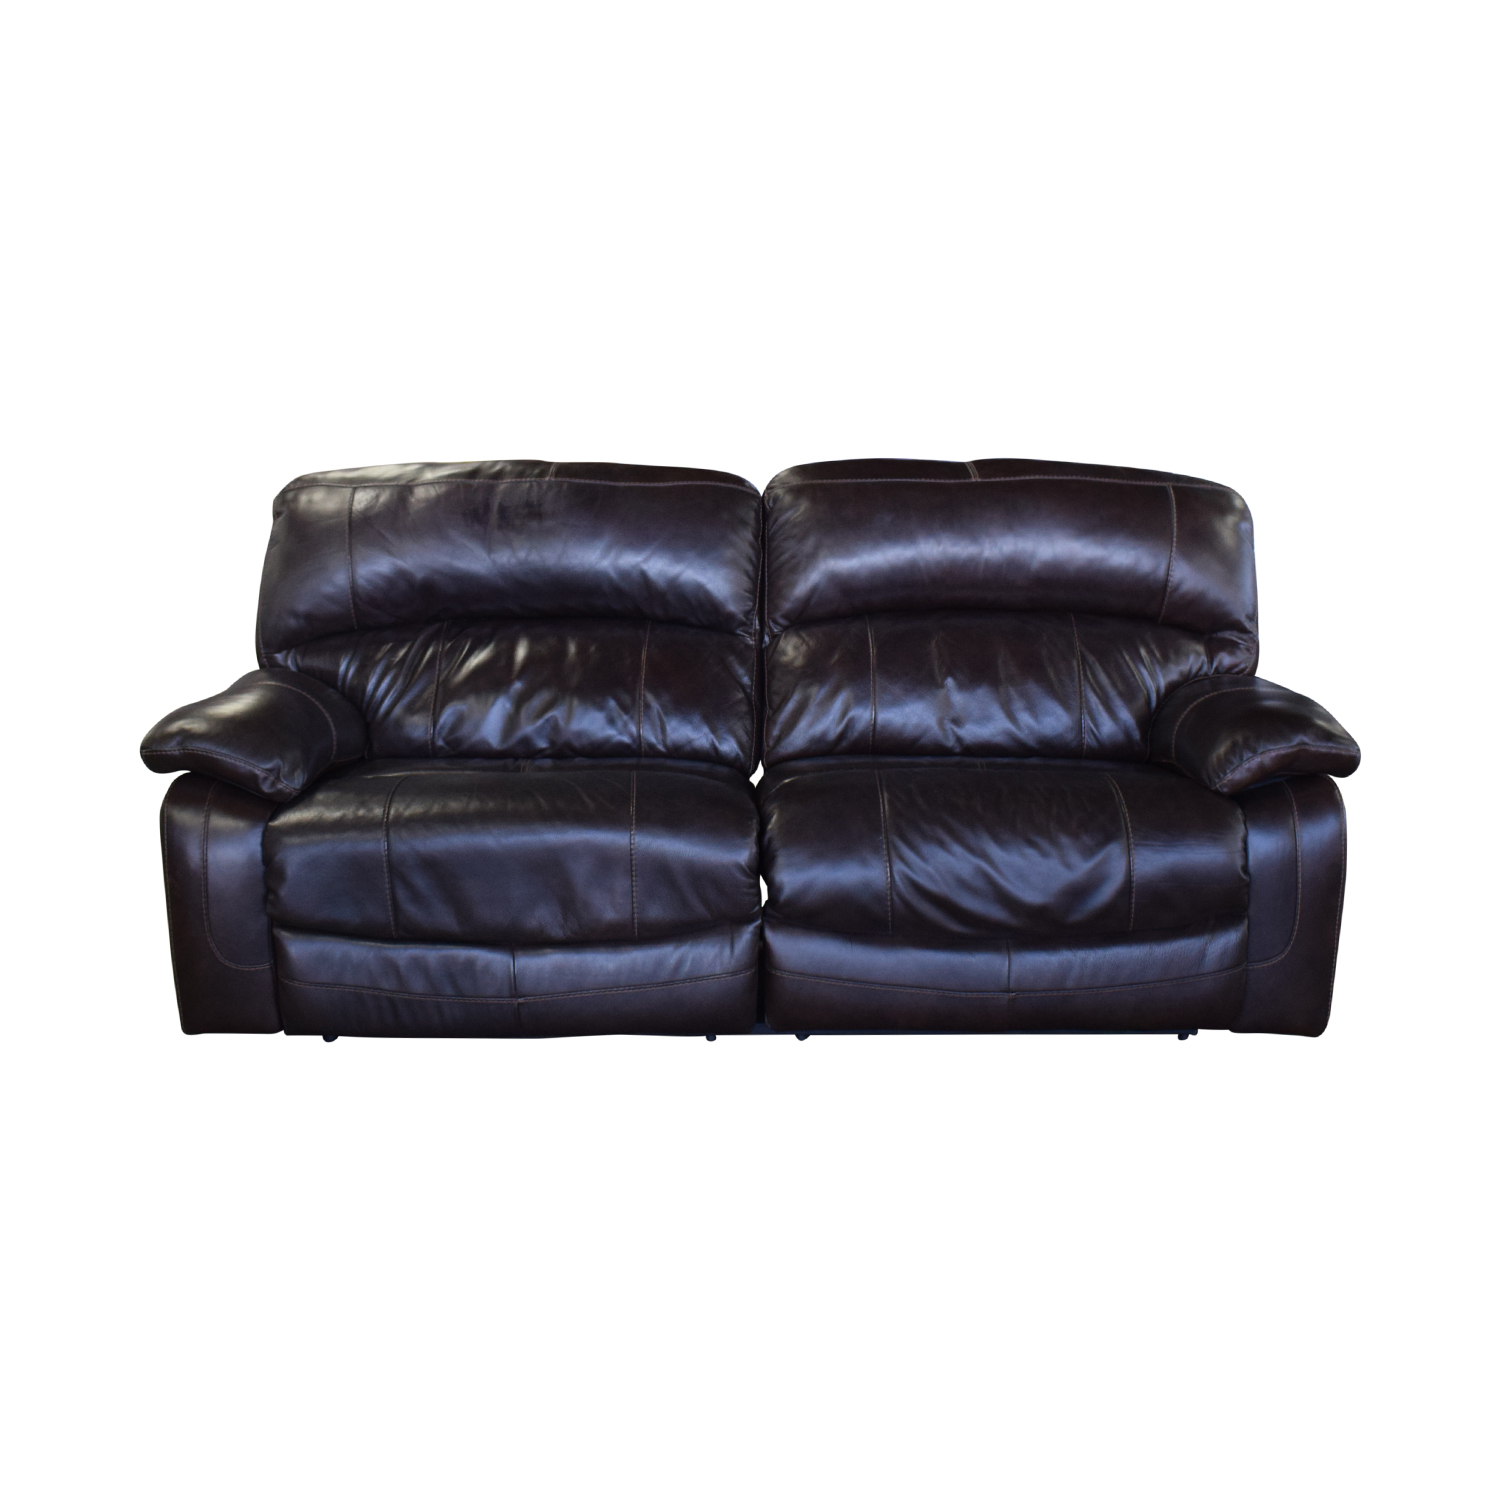 Ashley Furniture Ashley Furniture Sofa Recliner on sale